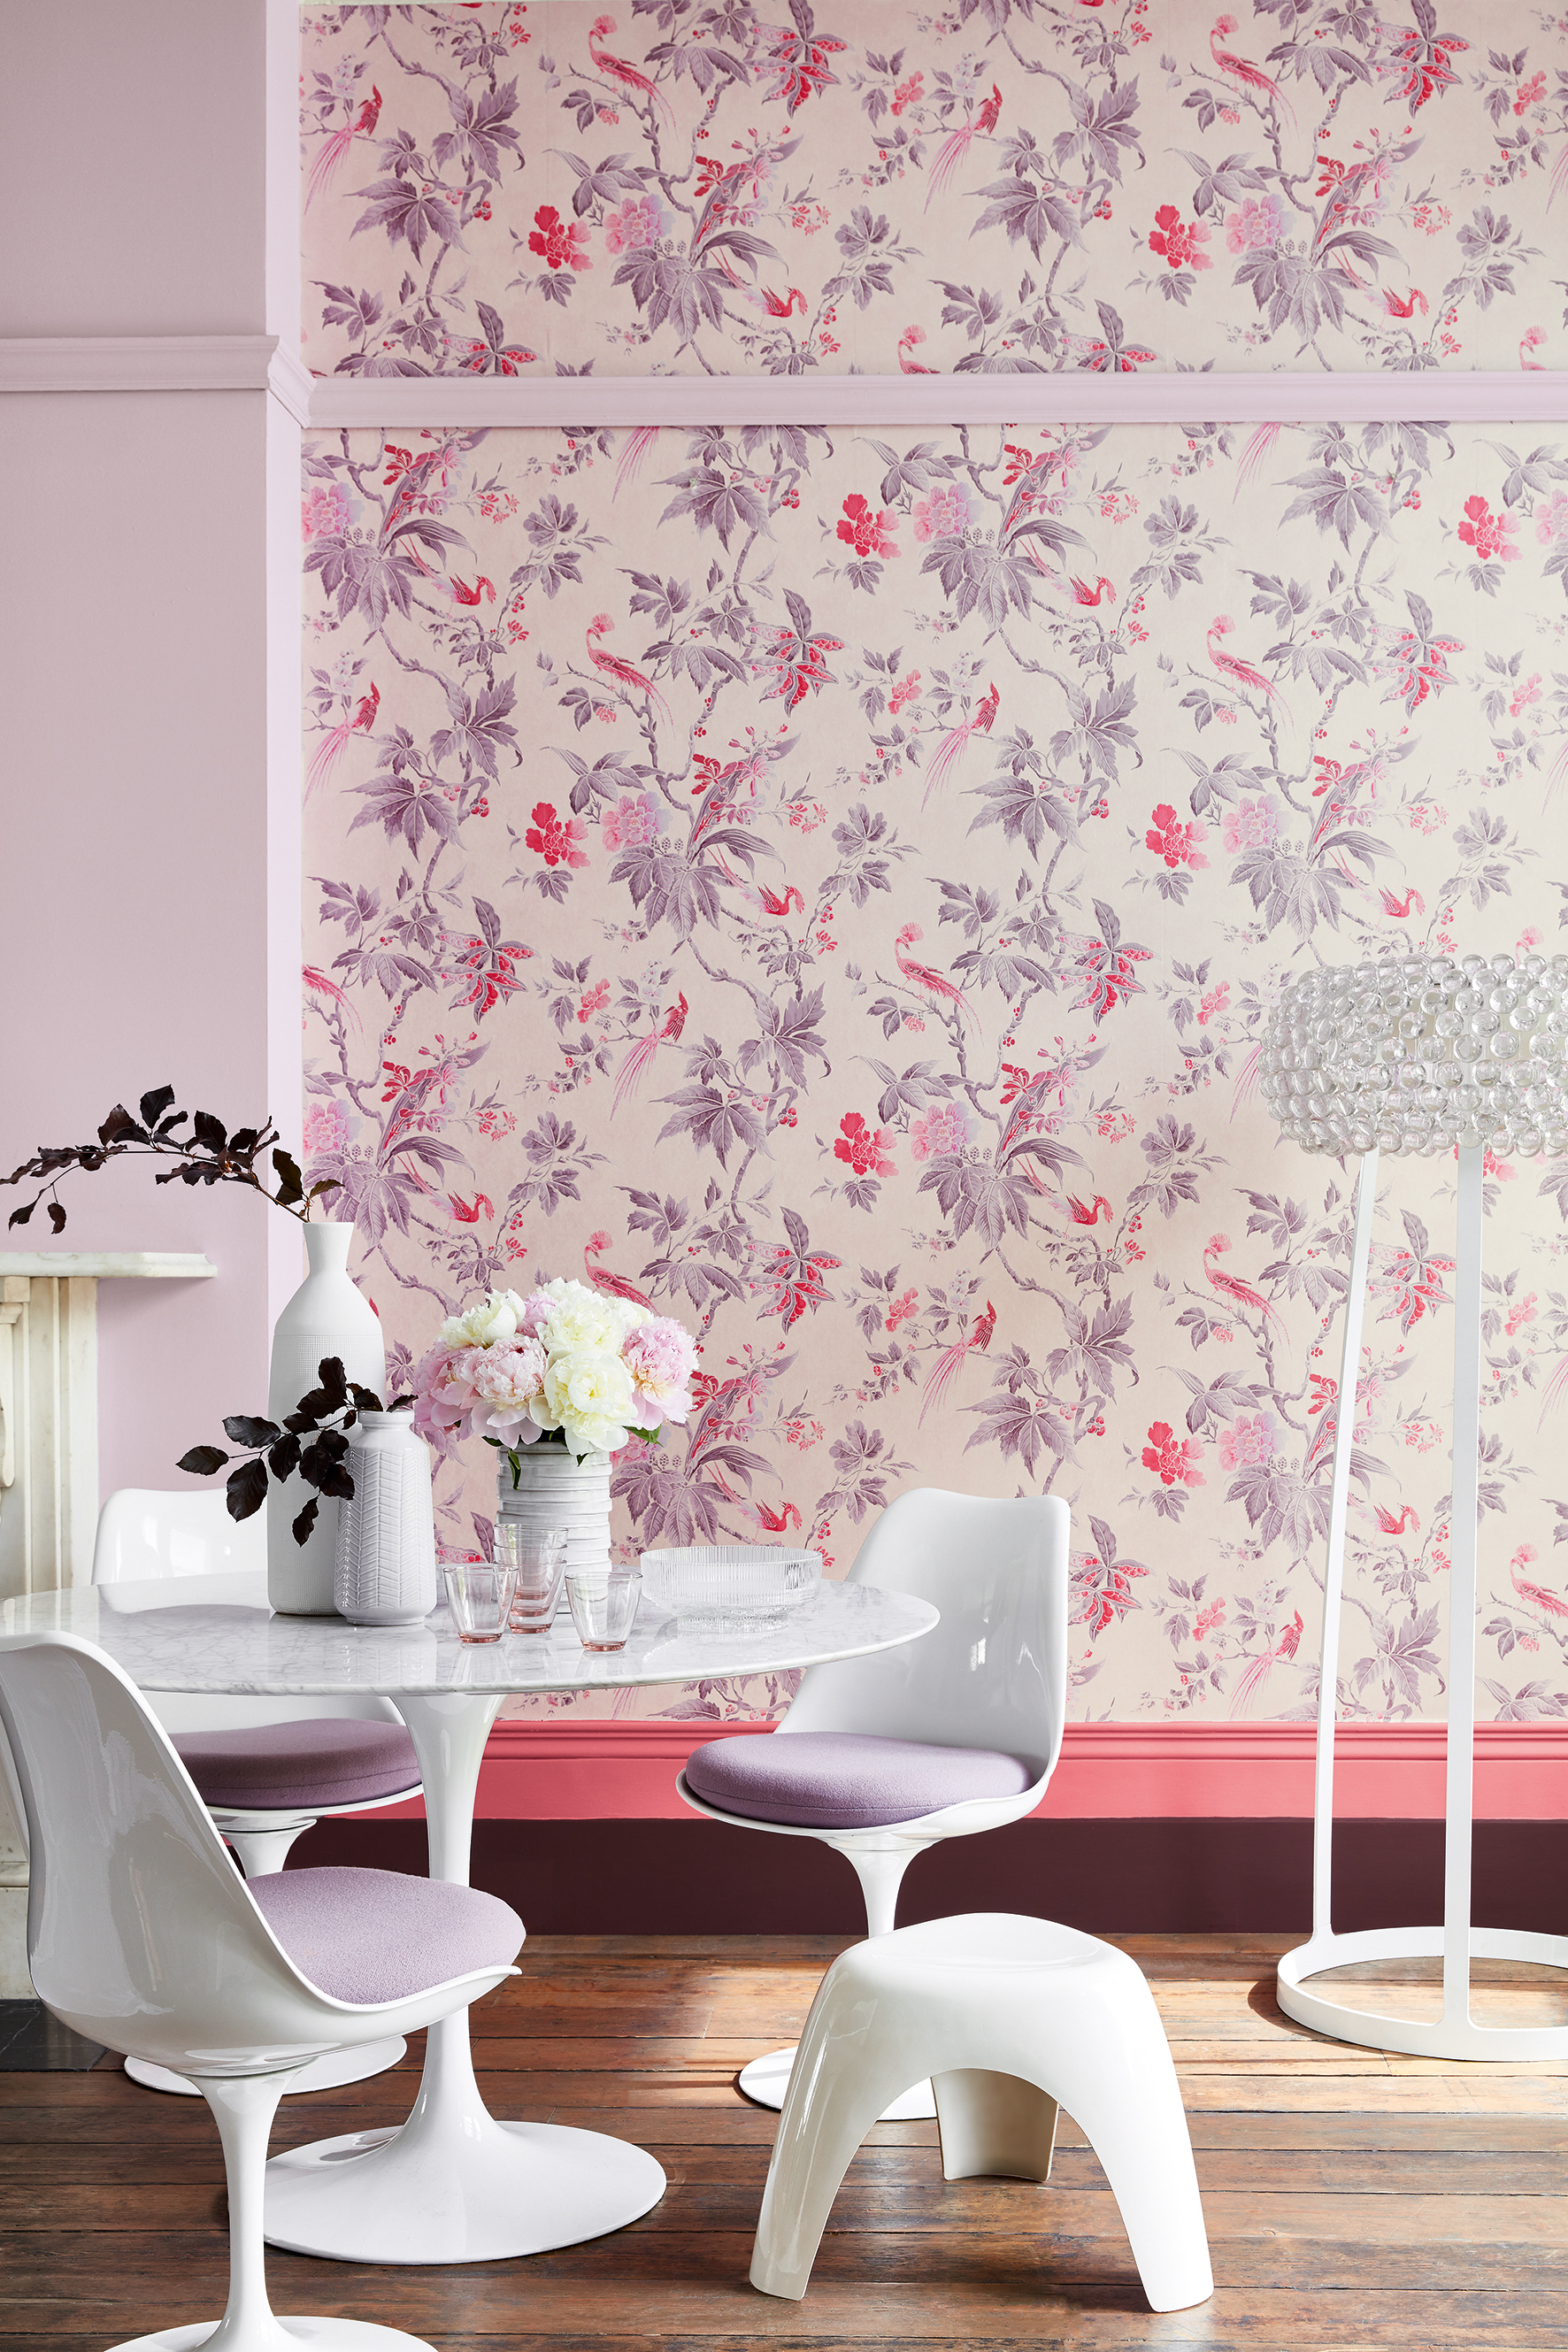 'Paradise - Pink' wallpaper, Hortense 266 paint, Carmine 189 paint, Cordoba 277 paint. Image courtesy of Little Greene.